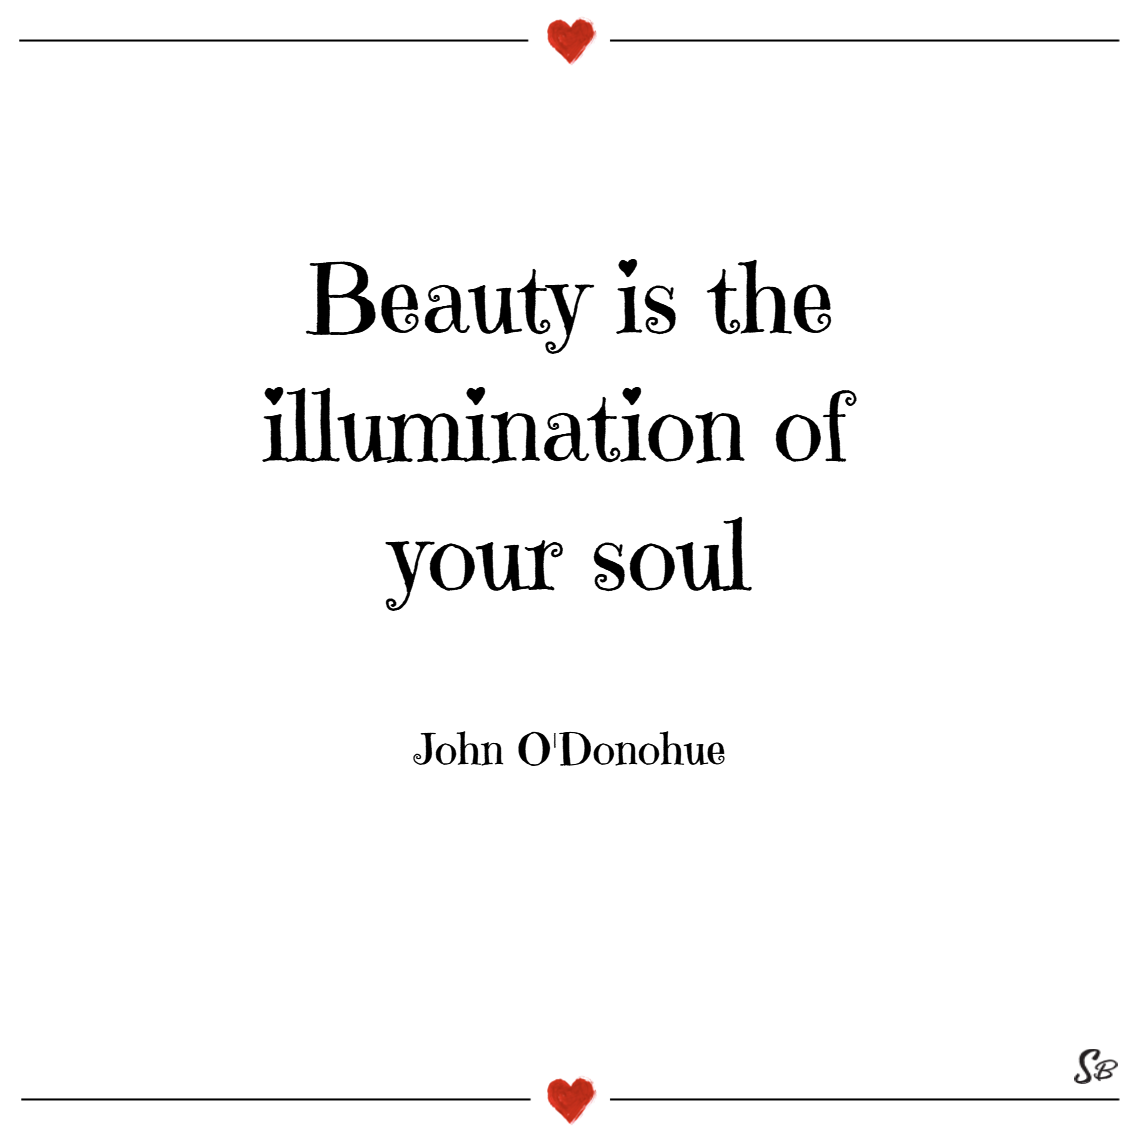 Eauty is the illumination of your soul. – john o'donohue Beauty quotes